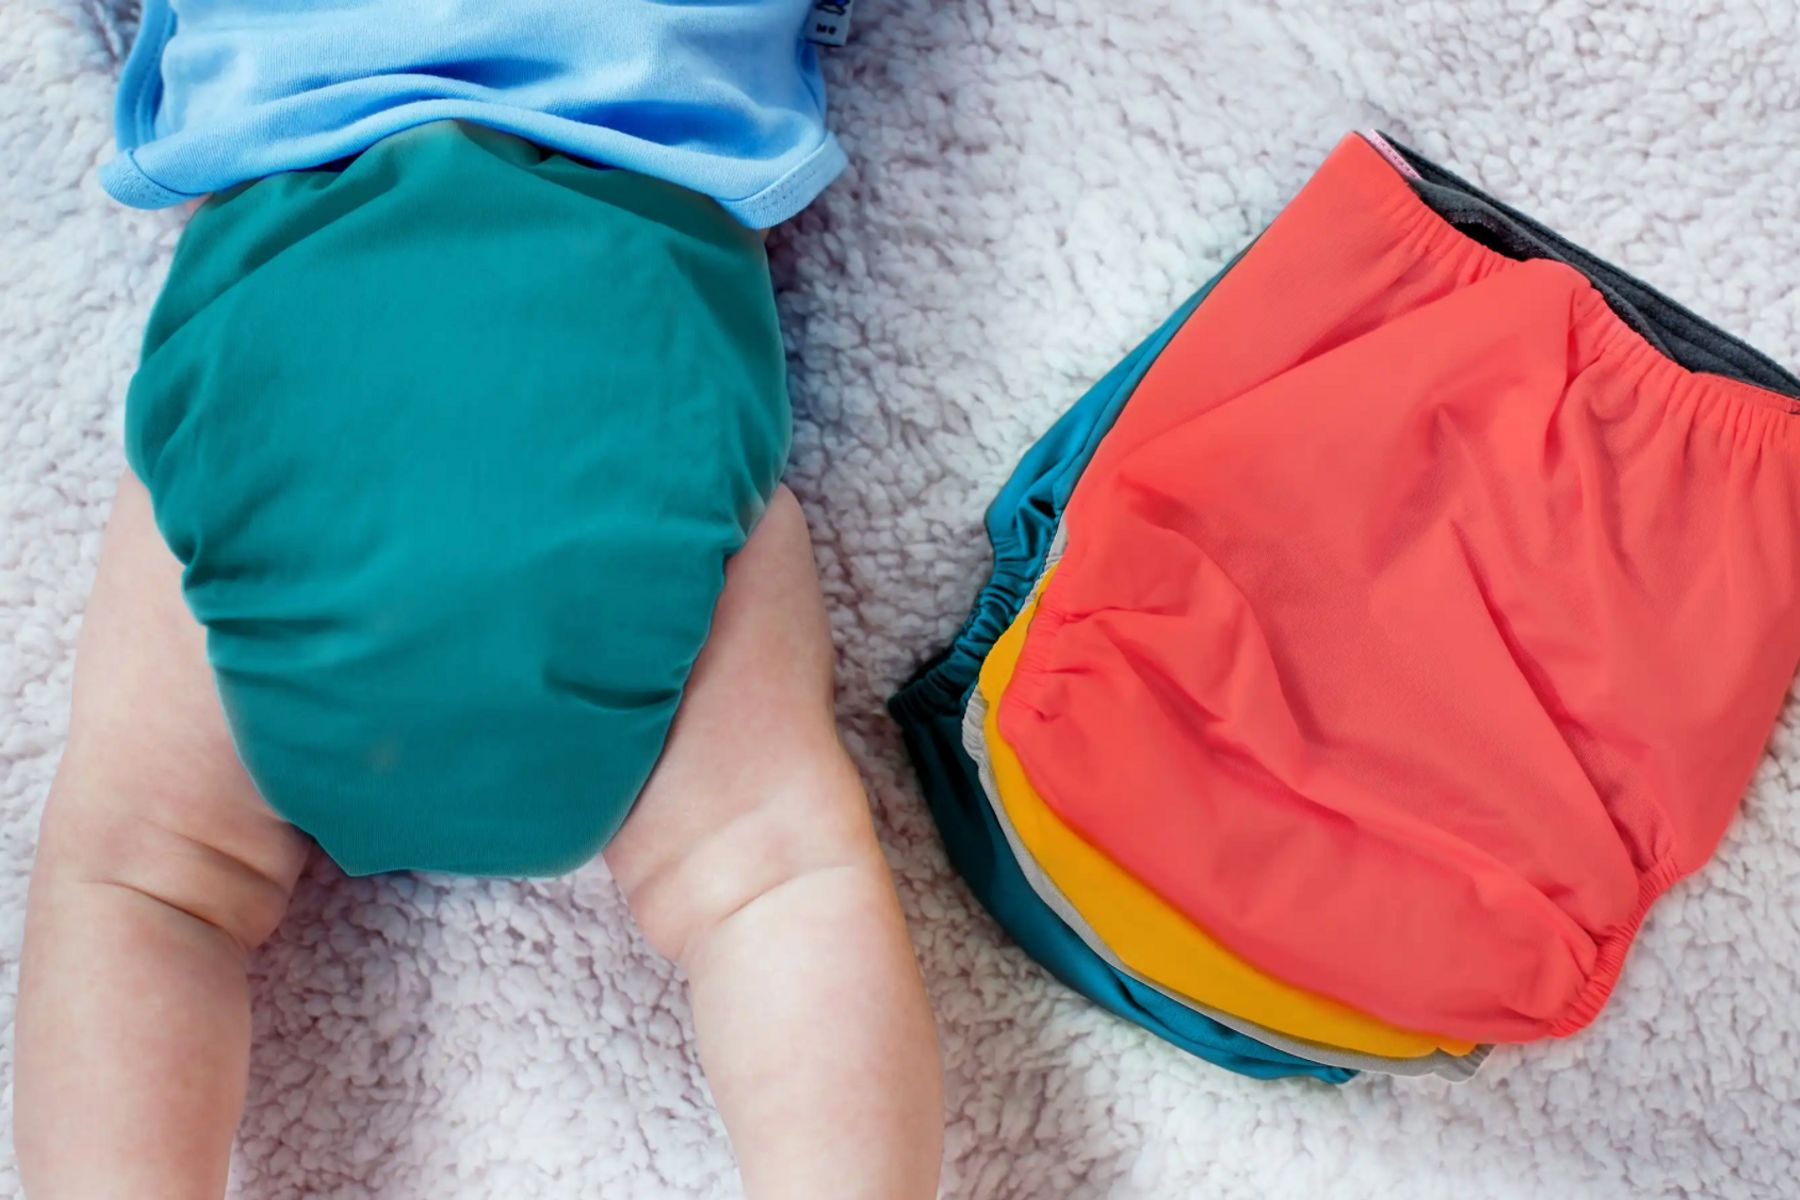 baby with a cloth nappy on next to colourful cloth nappies